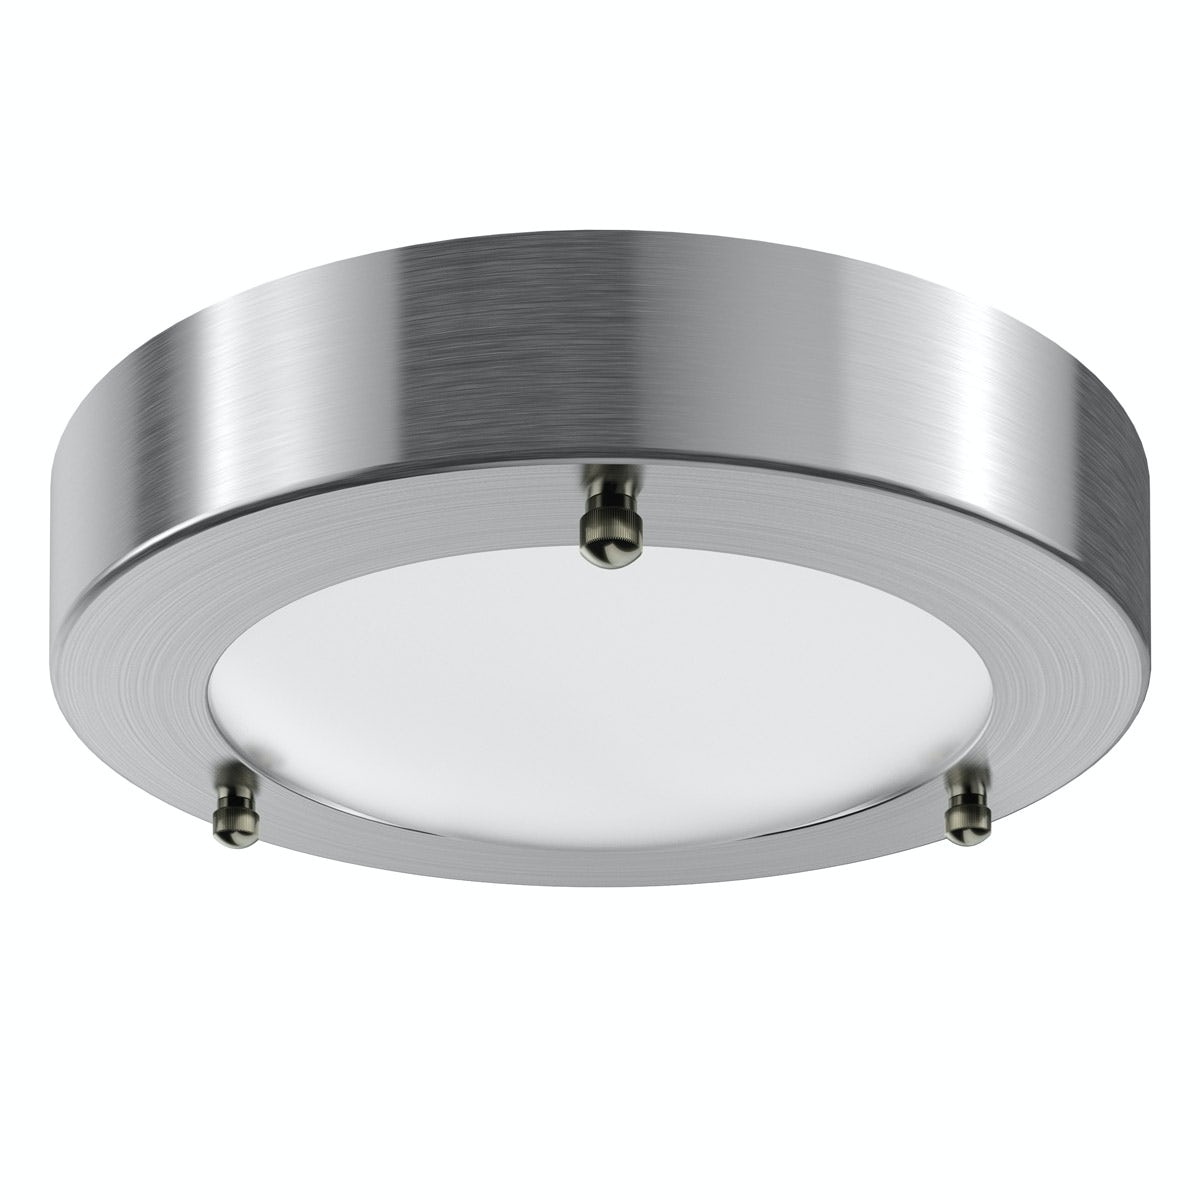 Ceiling Light Offers: Forum Llum Small Round Flush Bathroom Ceiling Light At